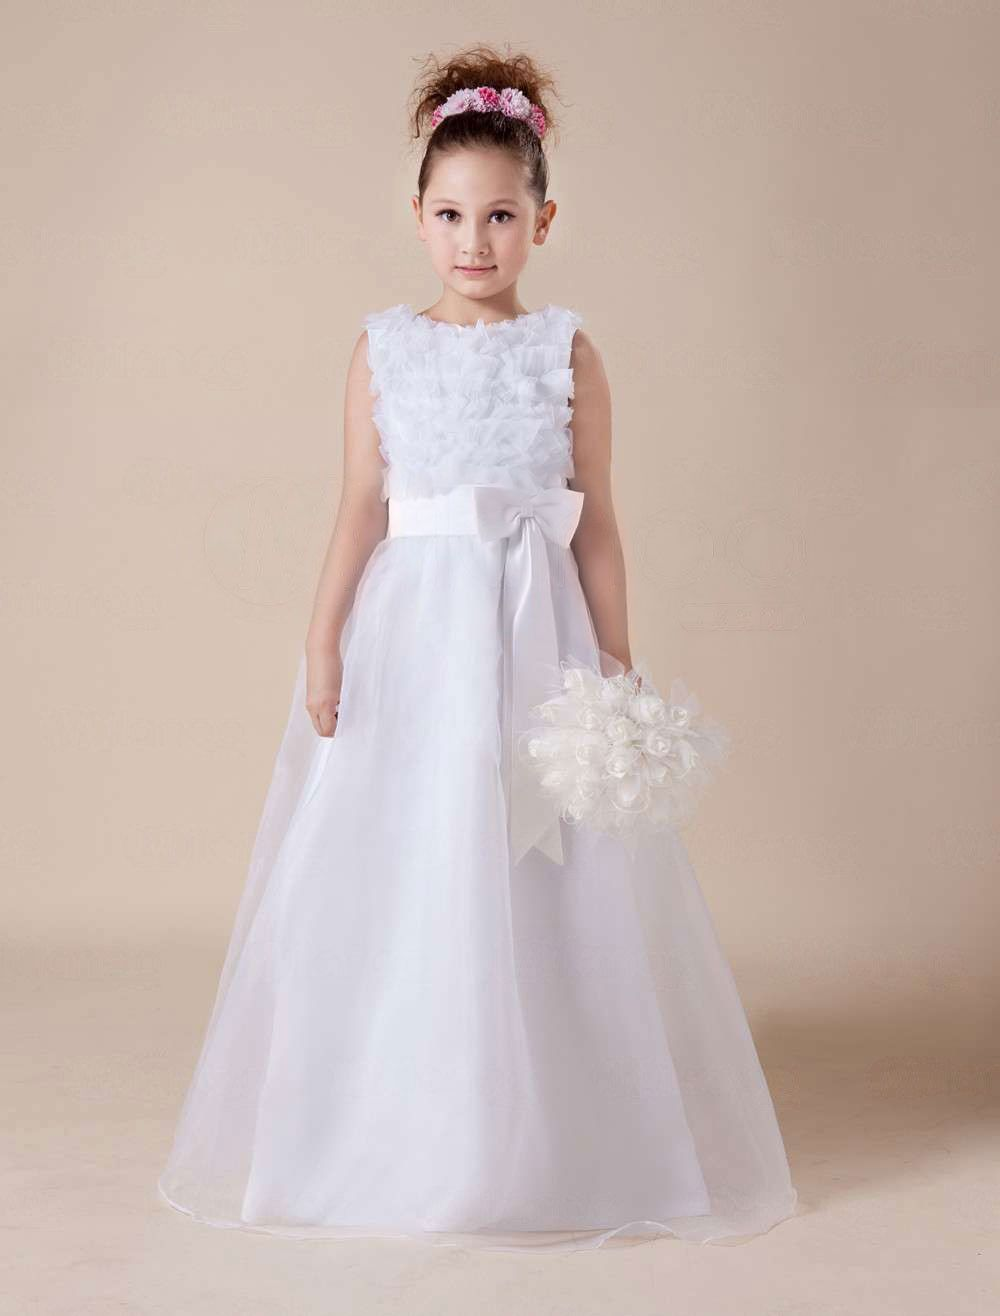 Cute white soft tulle flower girl dress party dresses party cute white soft tulle flower girl dress party dresses mightylinksfo Images